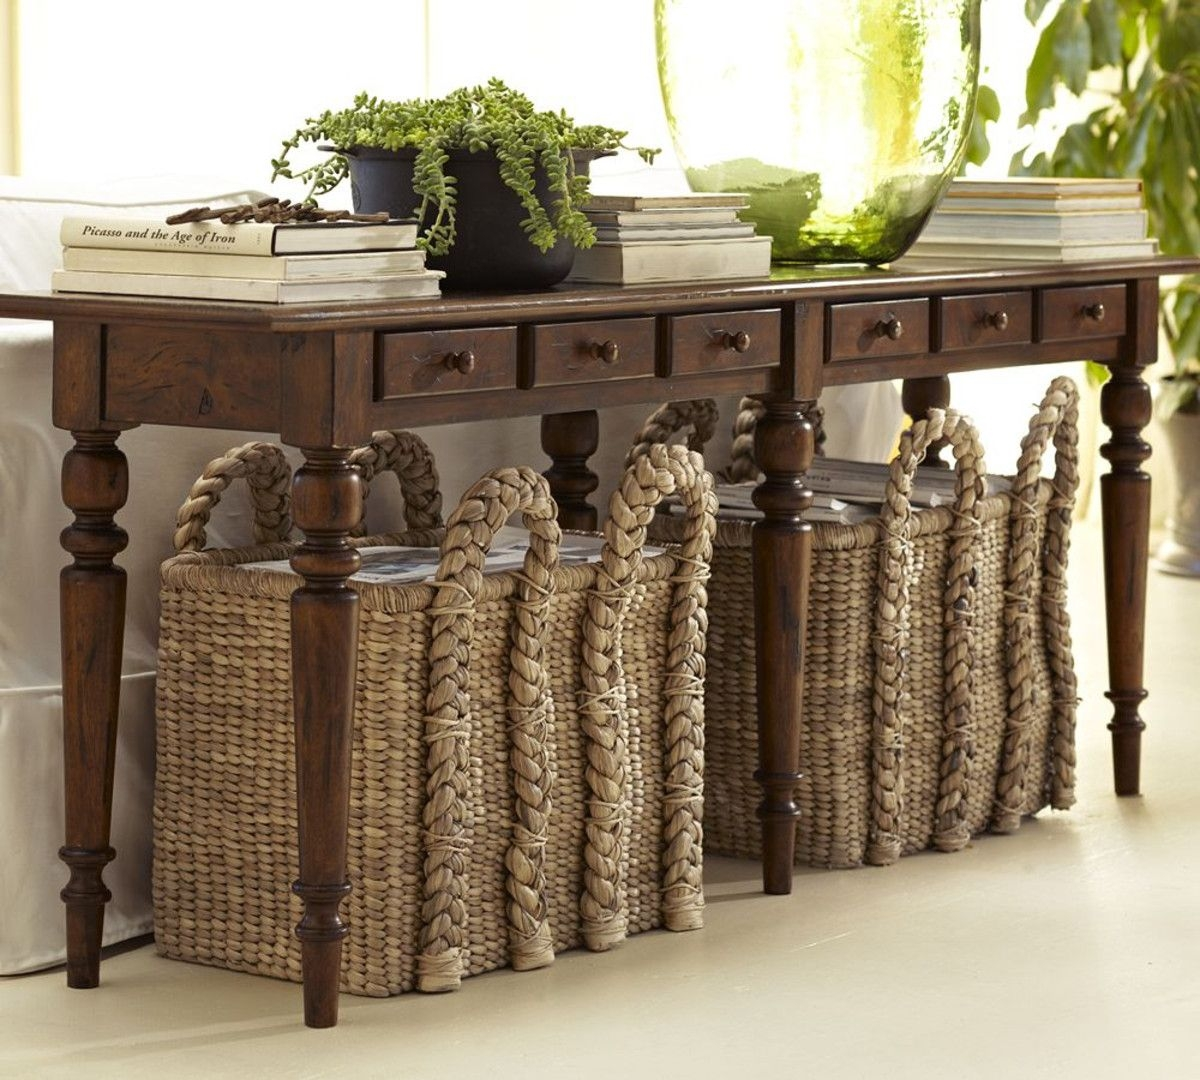 Tivoli spindle console table